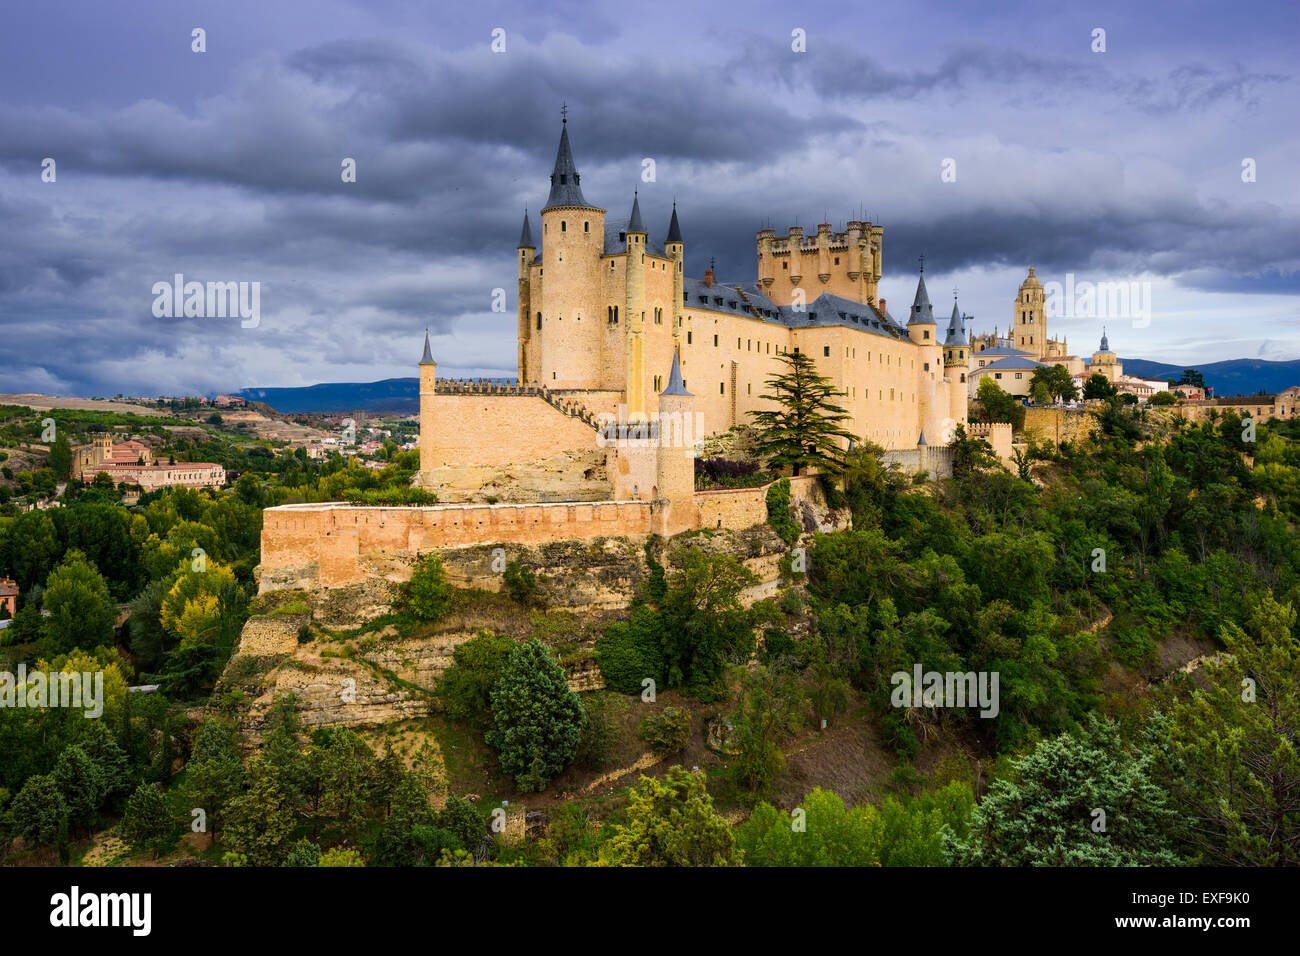 Segovia, Spain old town at the castle. - Stock Image